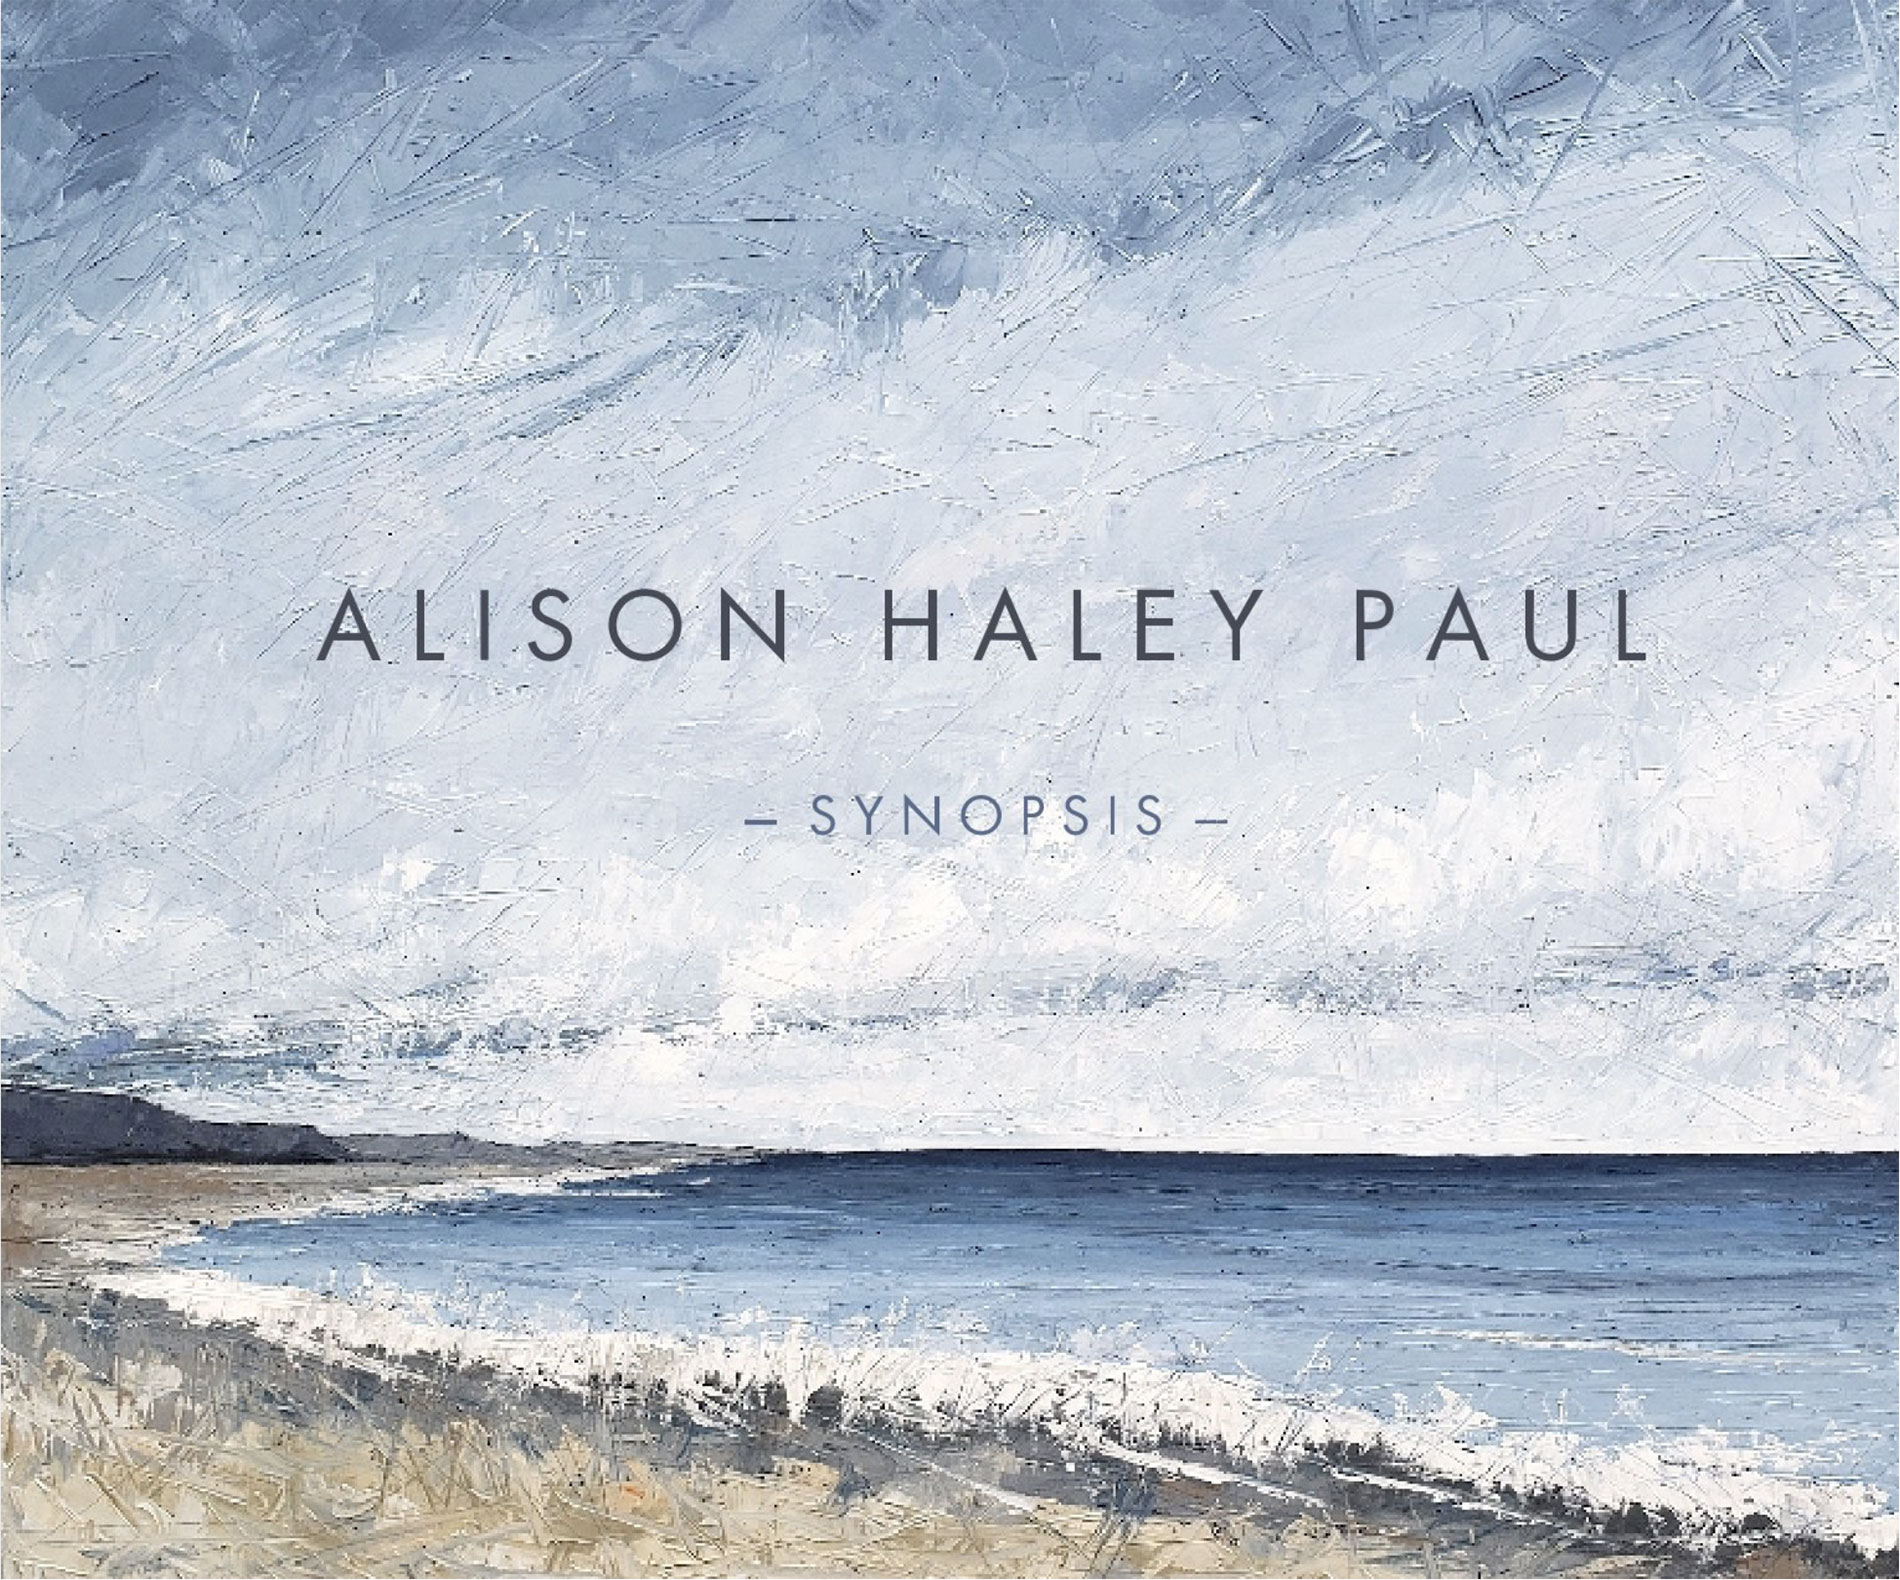 Alison Haley Paul Synopsis